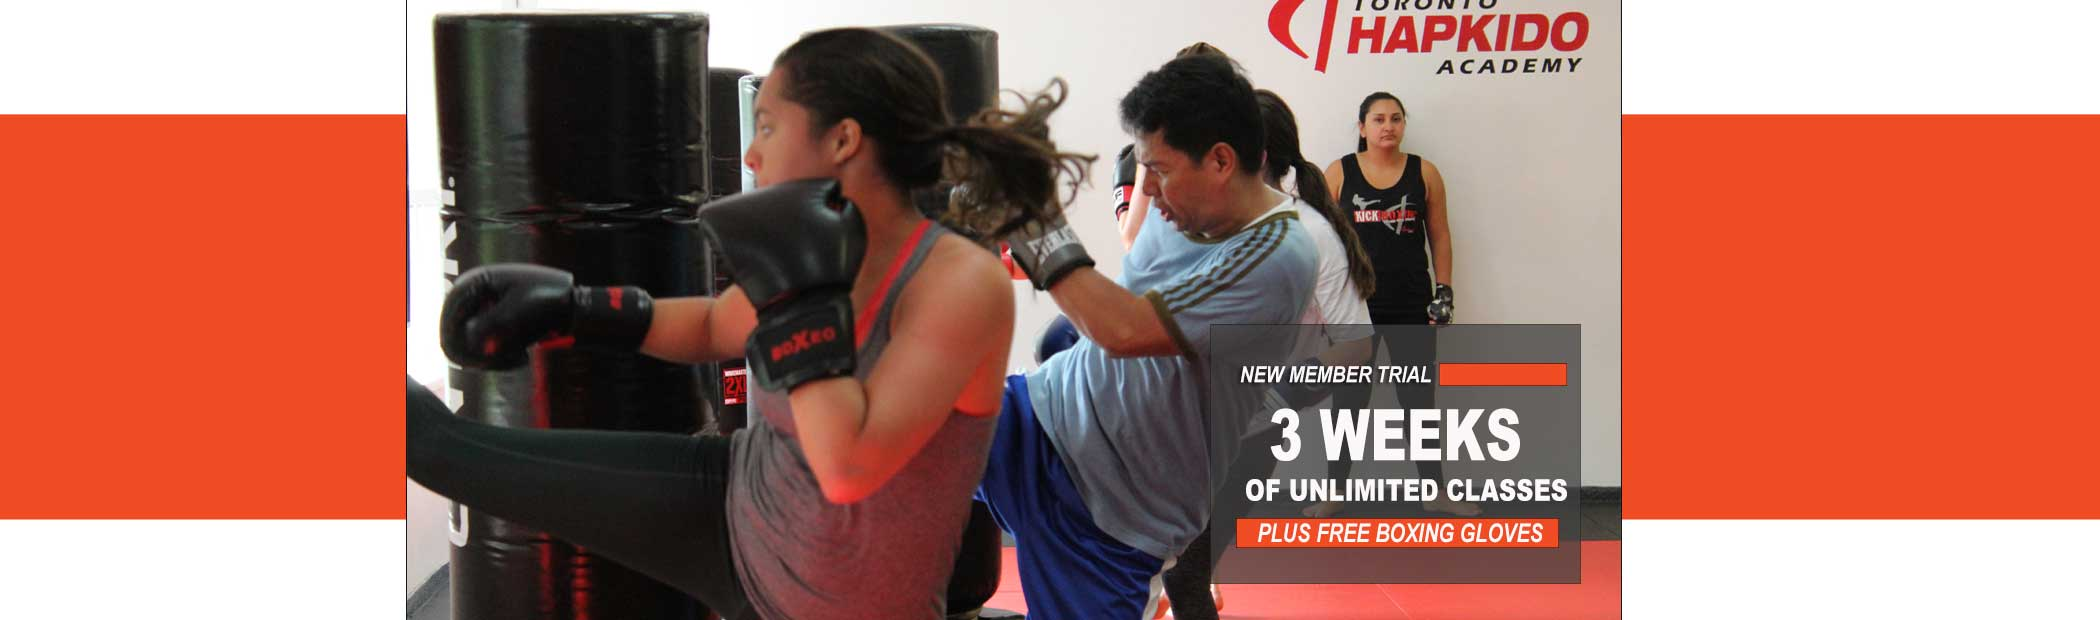 kickboxing classes north york